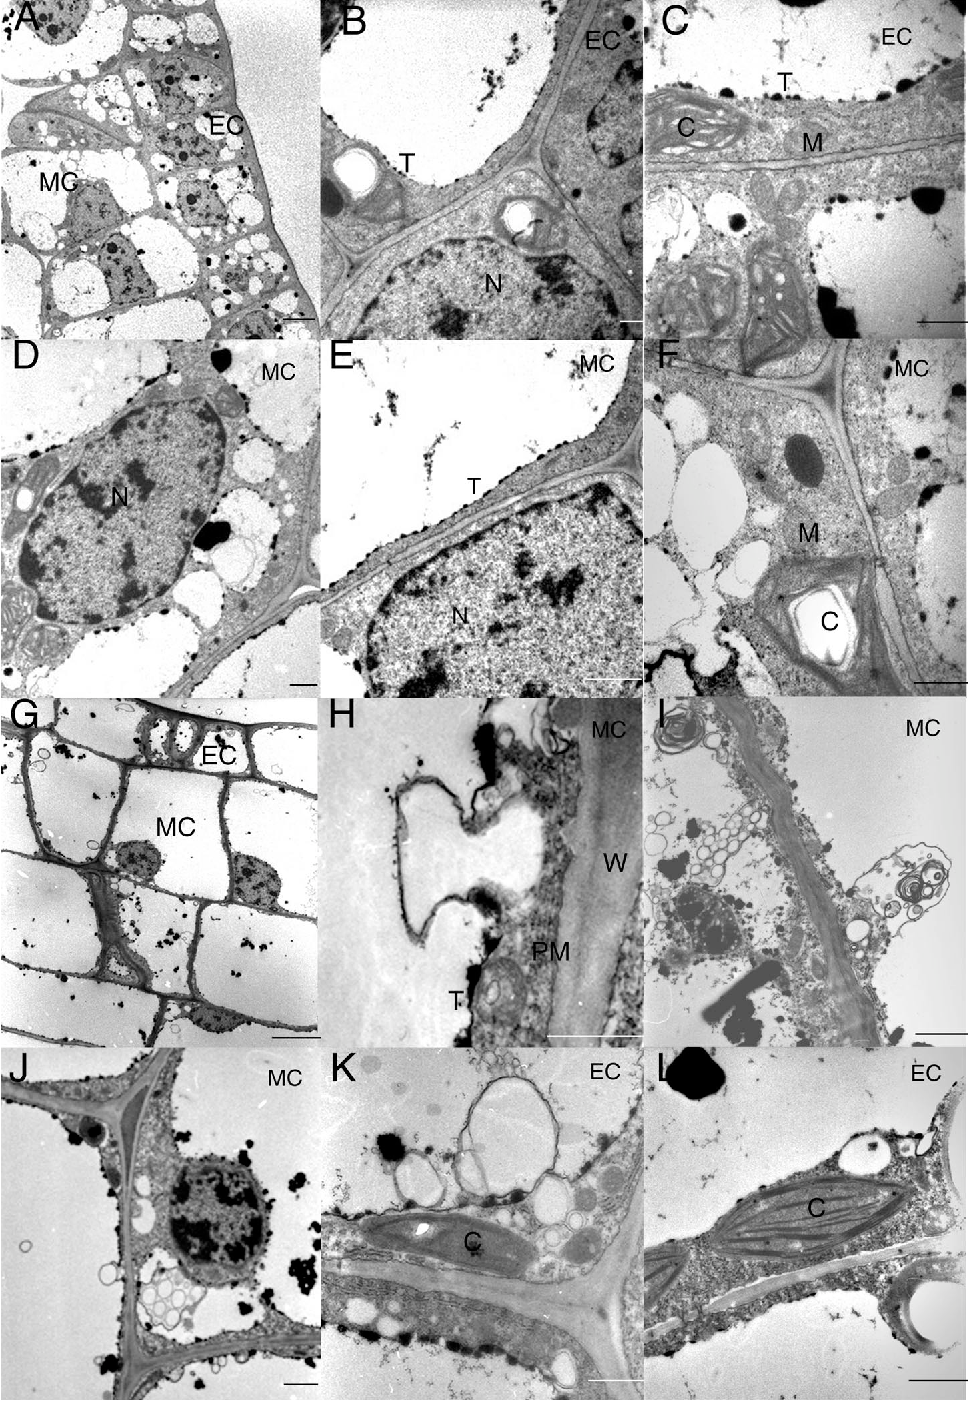 Figure 7. Transmission Electron Micrographs of Tissue from Perforation Sites and Adjacent Control Tissue at Stages 1 and 2.